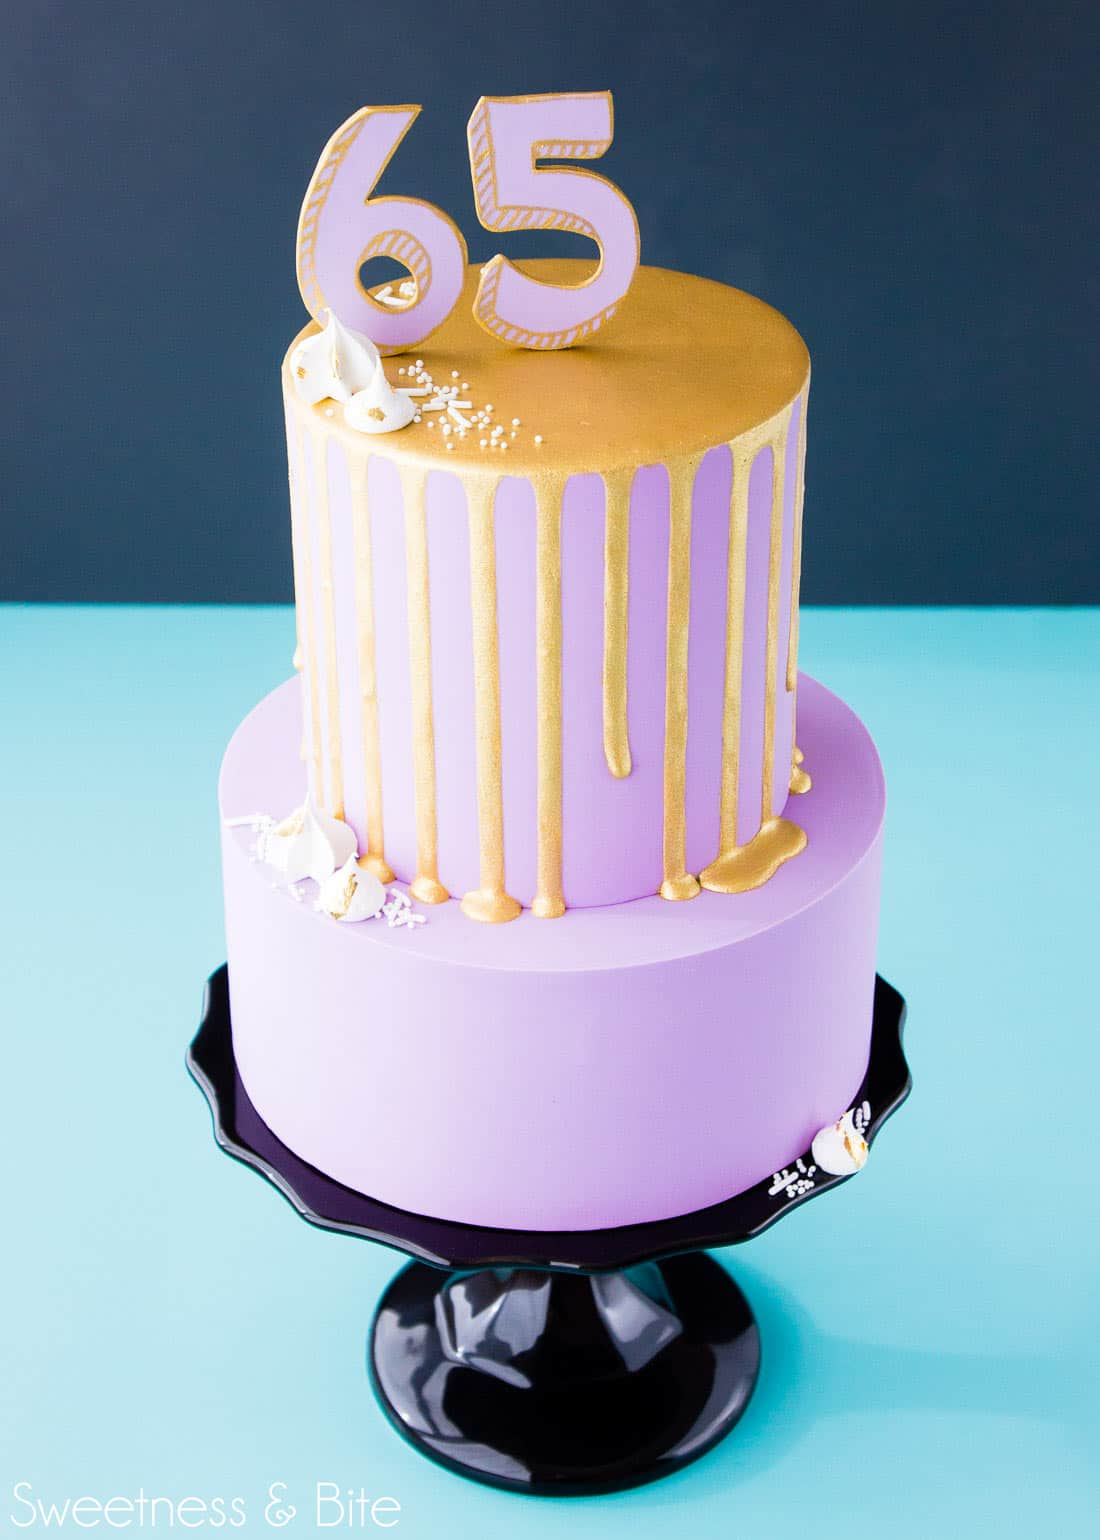 Gold Drip Cake ~Sweetness & Bite